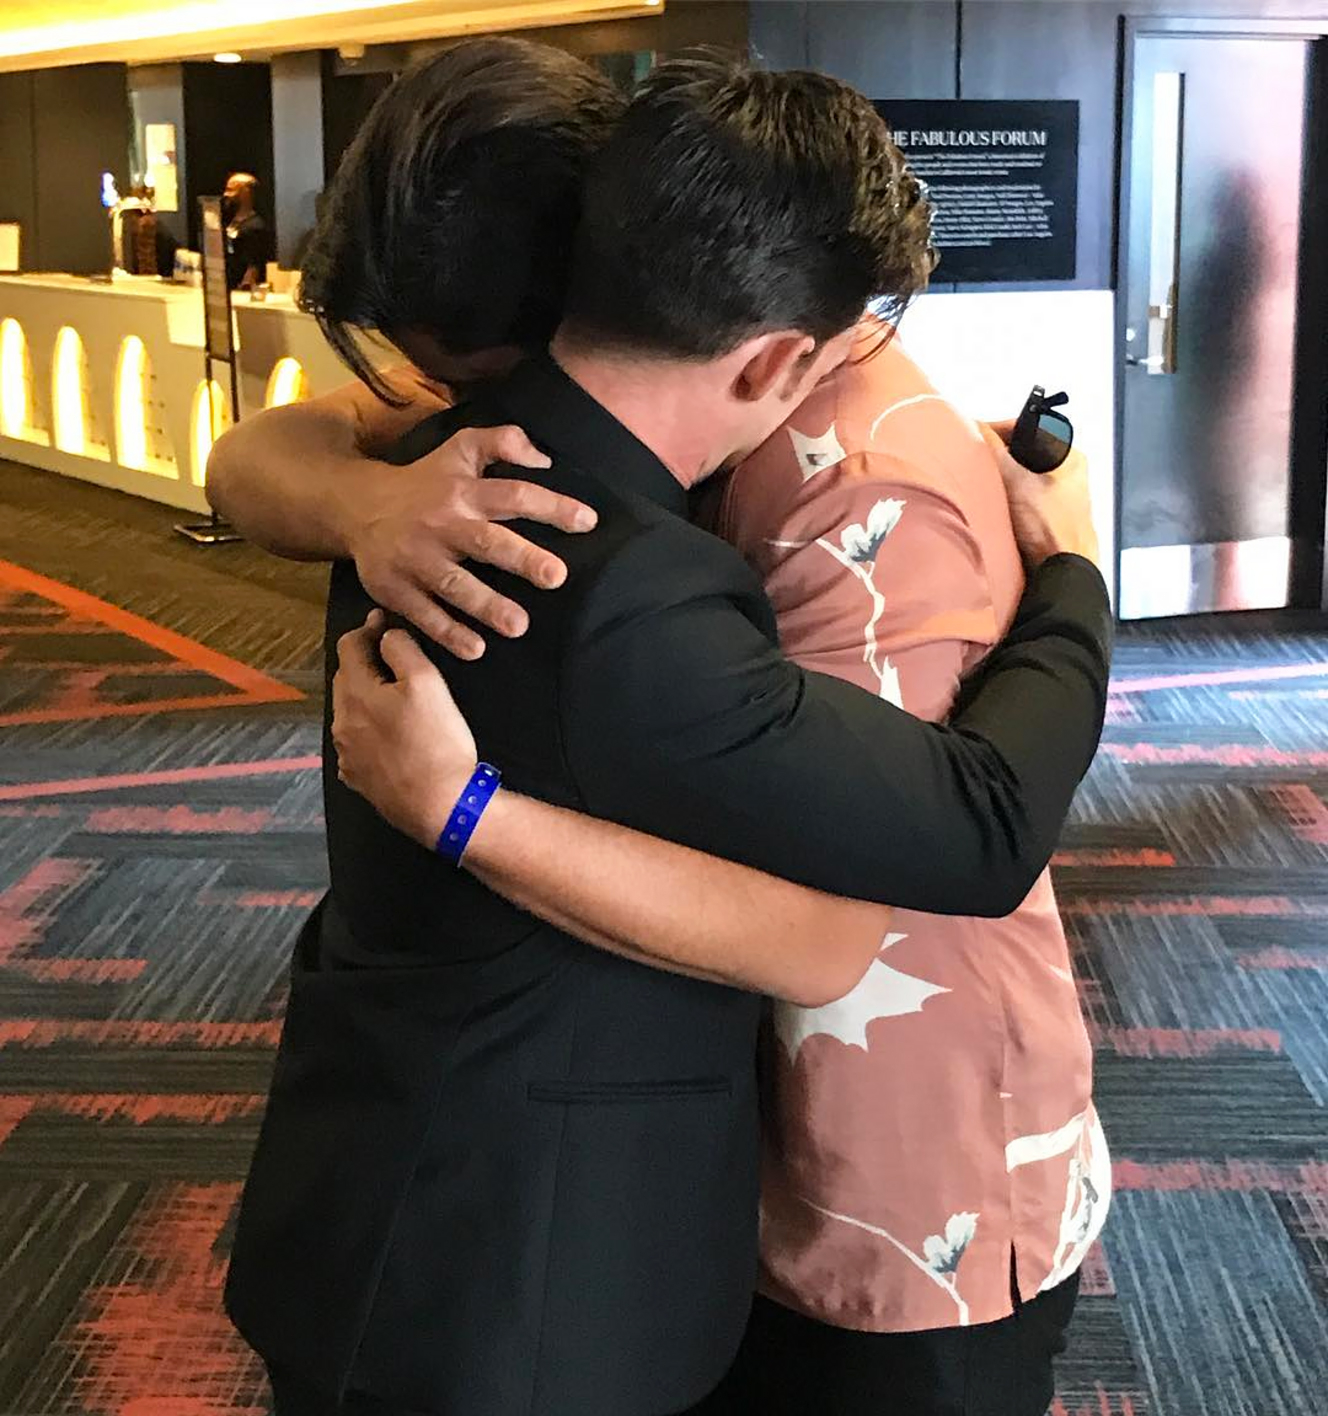 Drake Bell Josh Peck - They've officially ended their feud! Bell and Peck both shared the same photo of themselves embracing at the 2017 MTV Video Music Awards in Los Angeles.